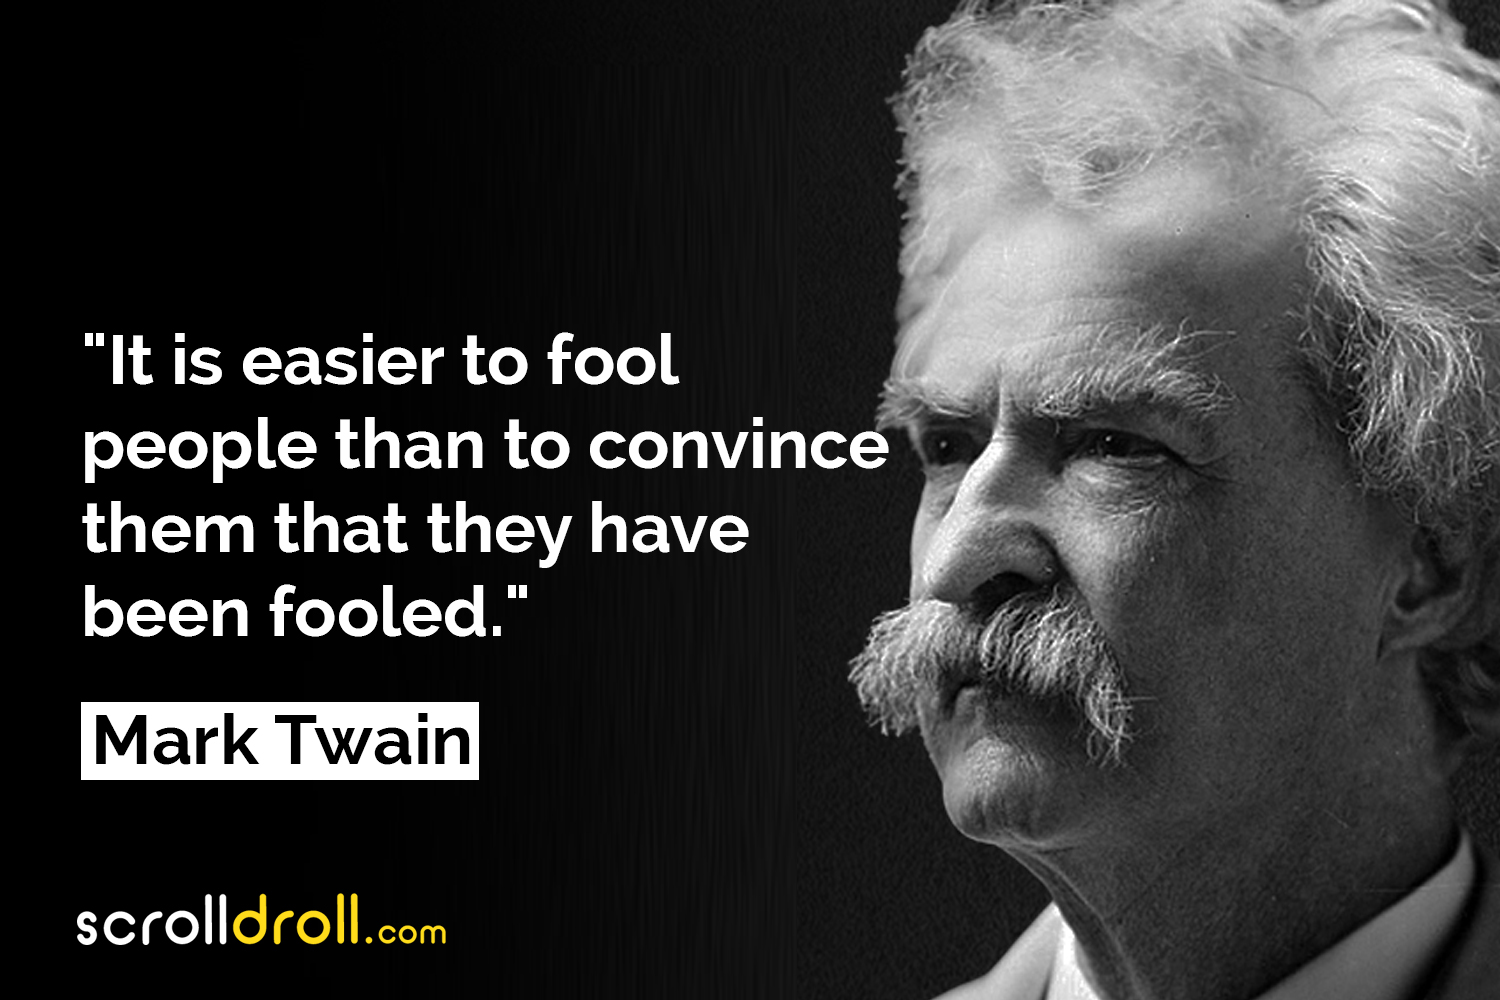 It is easier to fool people than to convince them that they have been fooled. – Mark Twain [1500X1000]